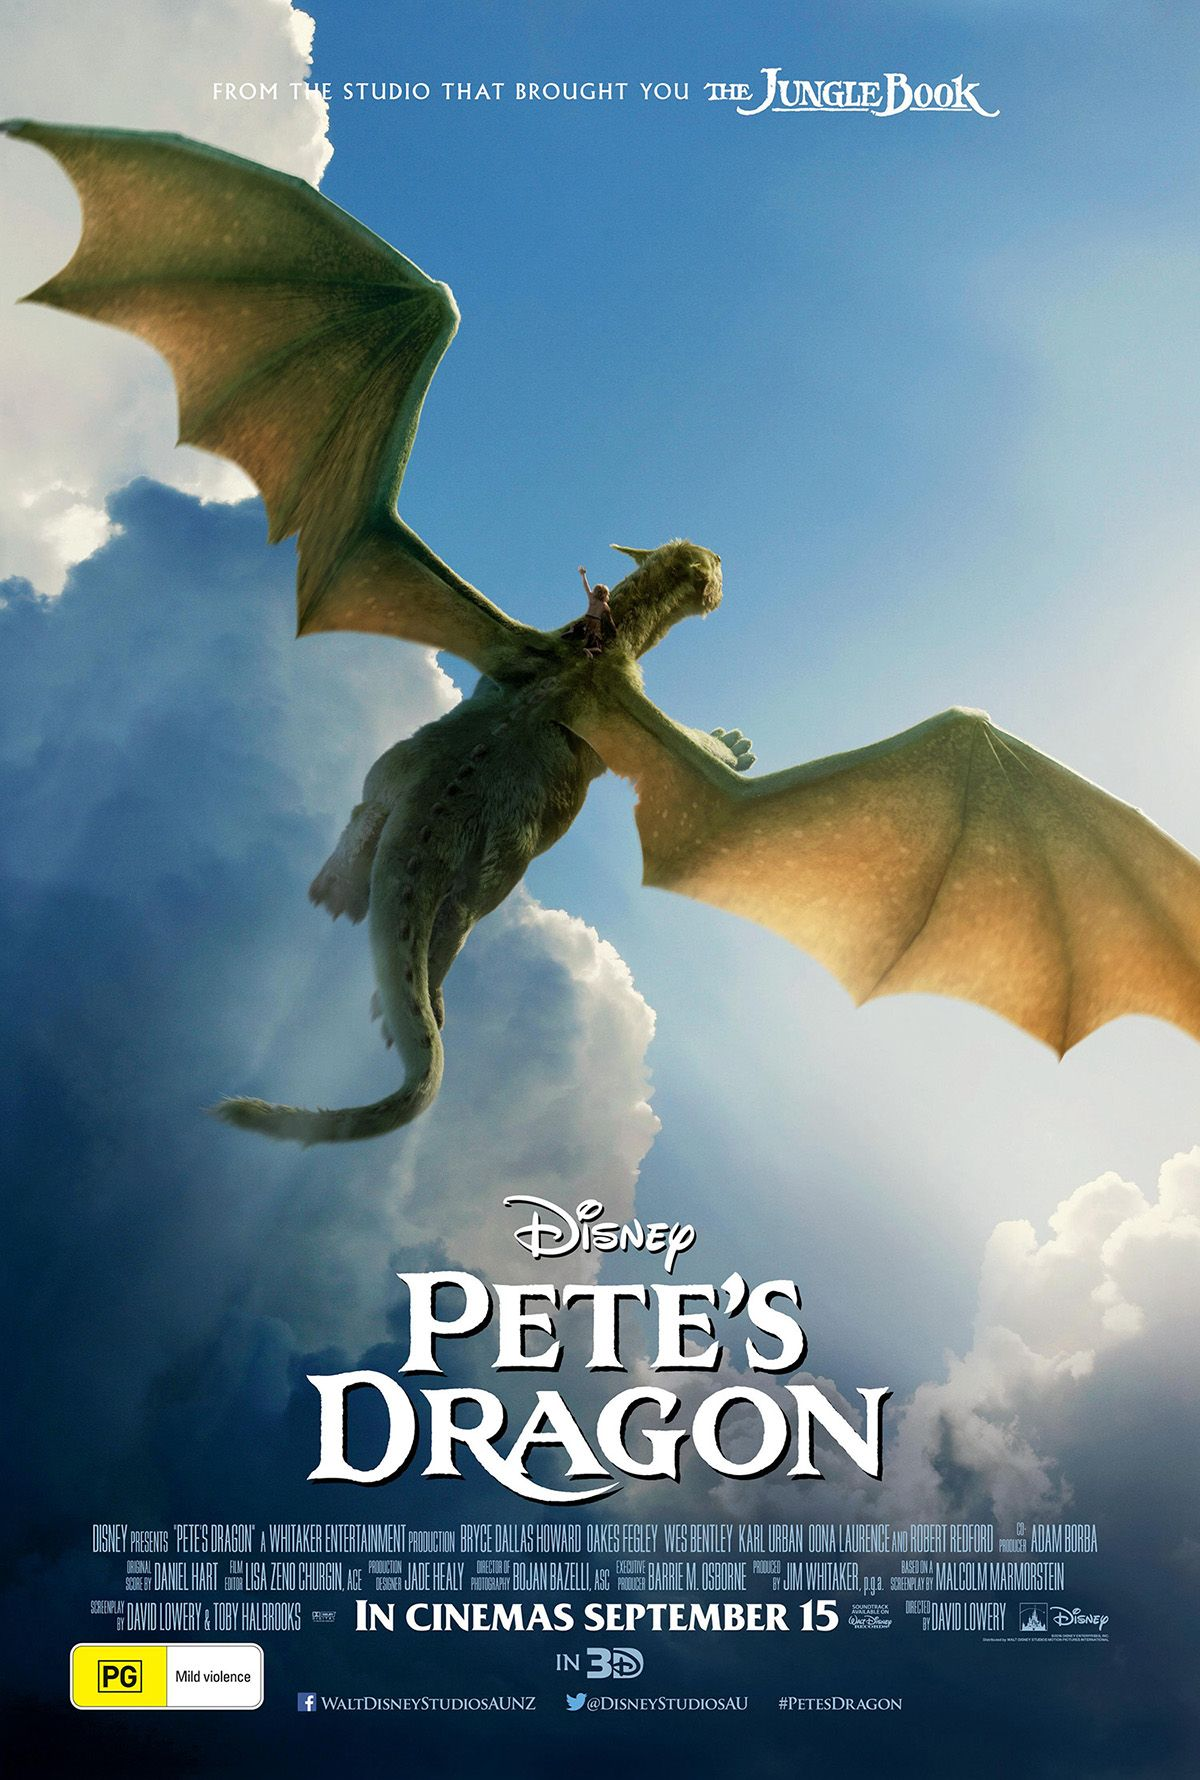 """I cannot wait for it to hit theatres this Thursday so I can experience the joy of watching it all over again."" Kernel Jack Dignan​ loves Disney​'s remake of Pete's Dragon​ as much as I worshipped the original. Can't wait to see this one myself this weekend. Review's now up for your reading pleasure. http://saltypopcorn.com.au/petes-dragon/"